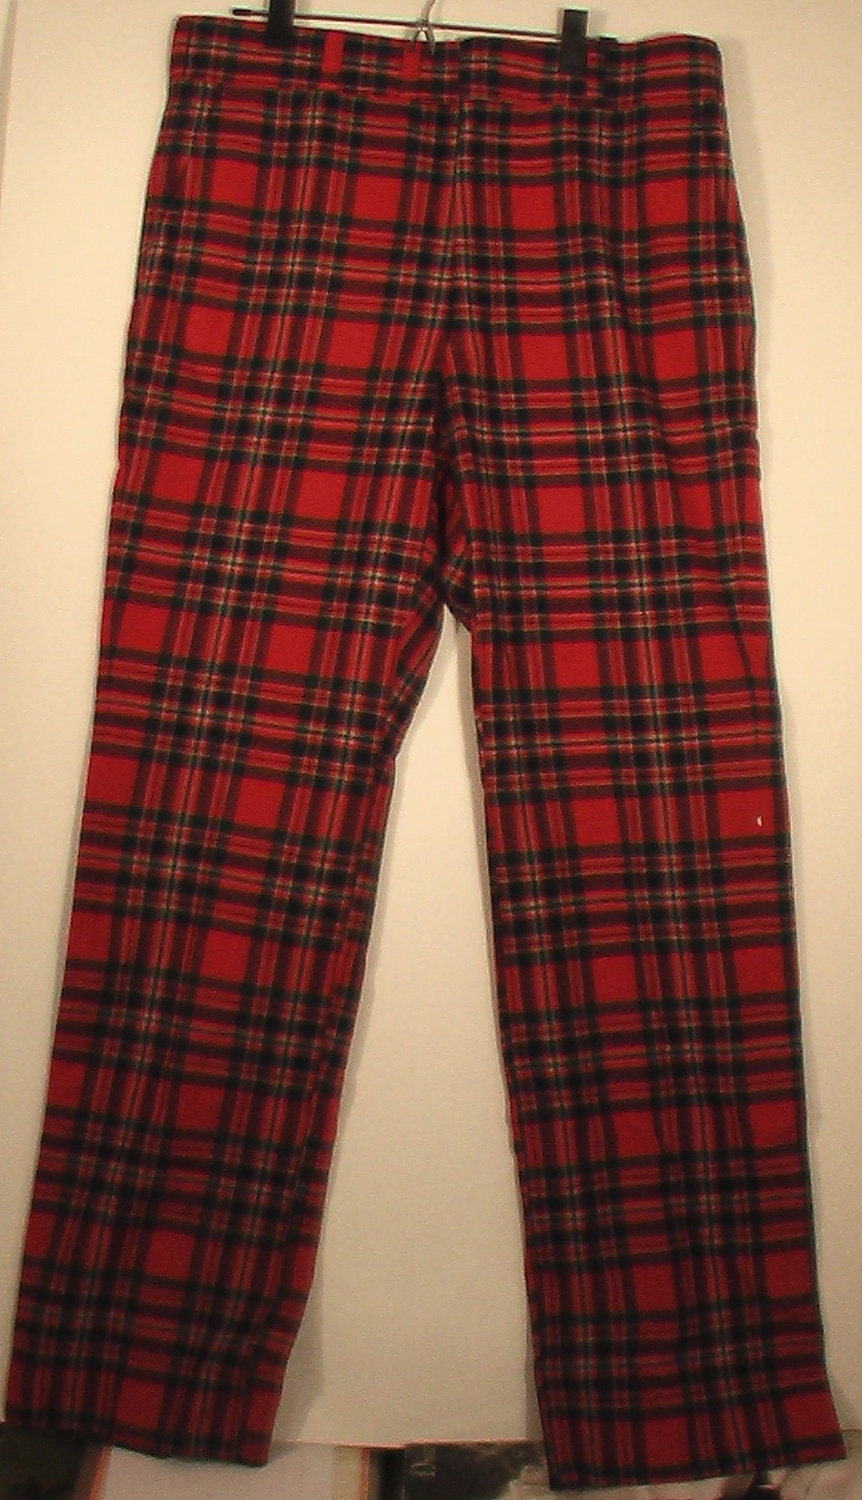 Men's punk red plaid polyester knit pants vintage by BrightCloset